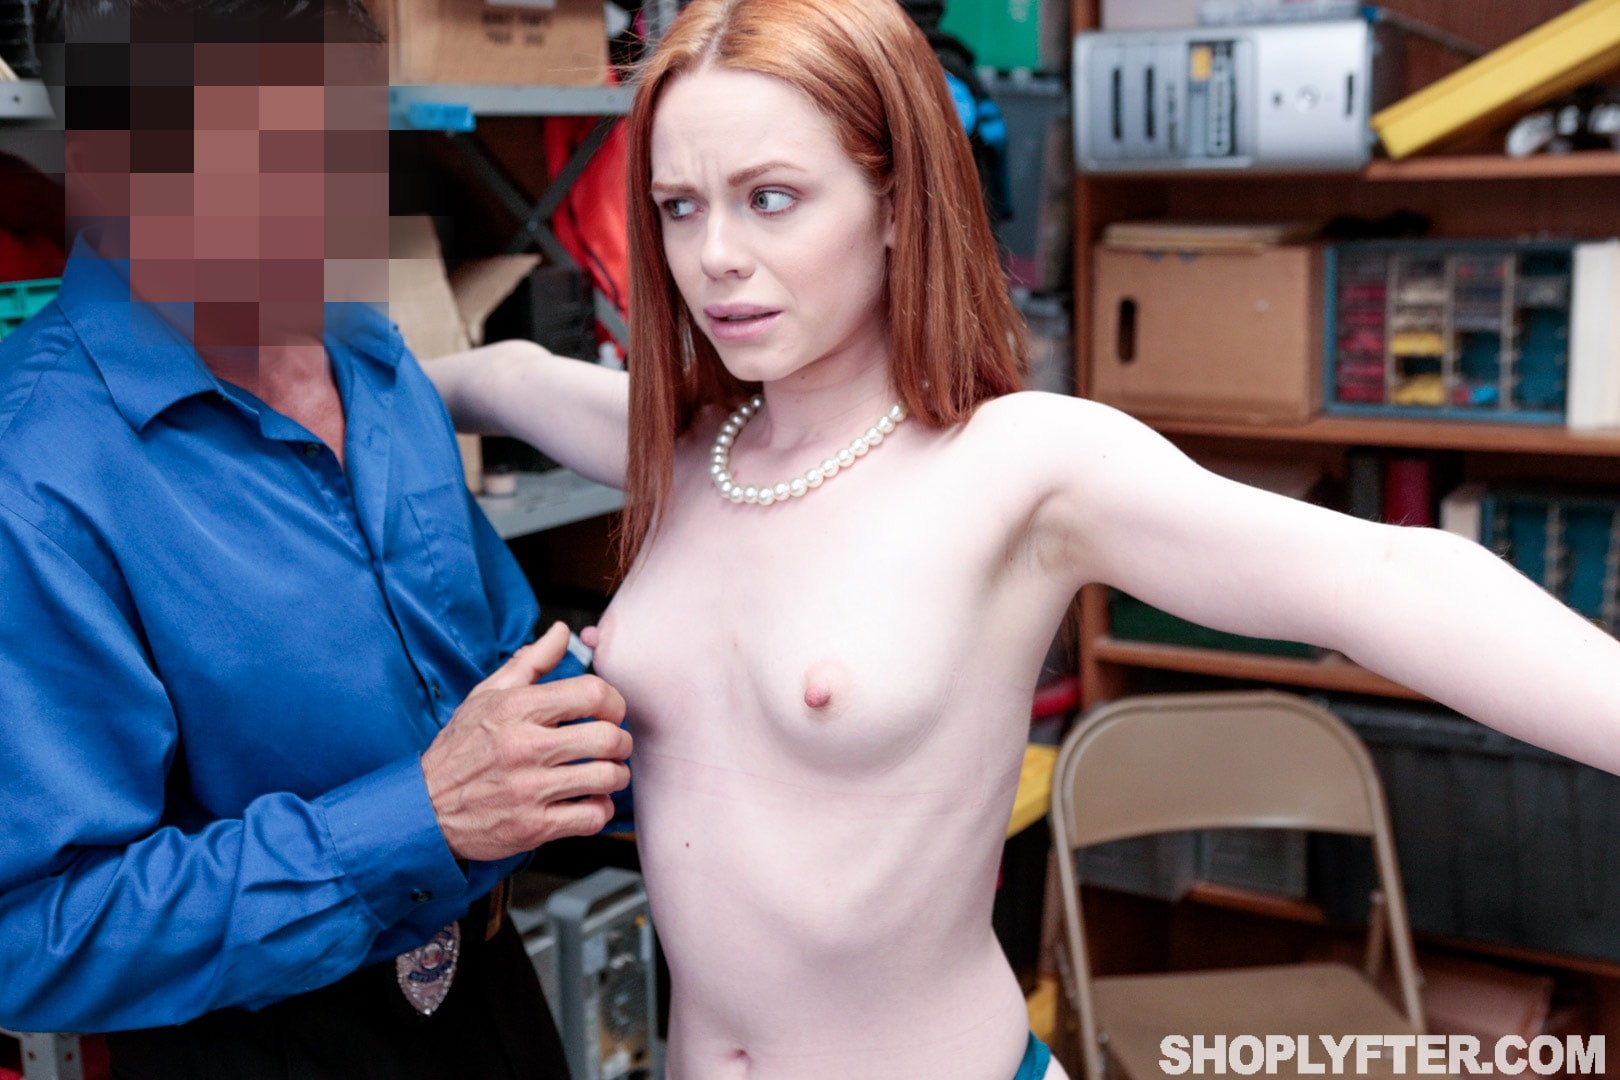 Team Skeet 'Case No. 5144158' starring Ella Hughes (Photo 44)